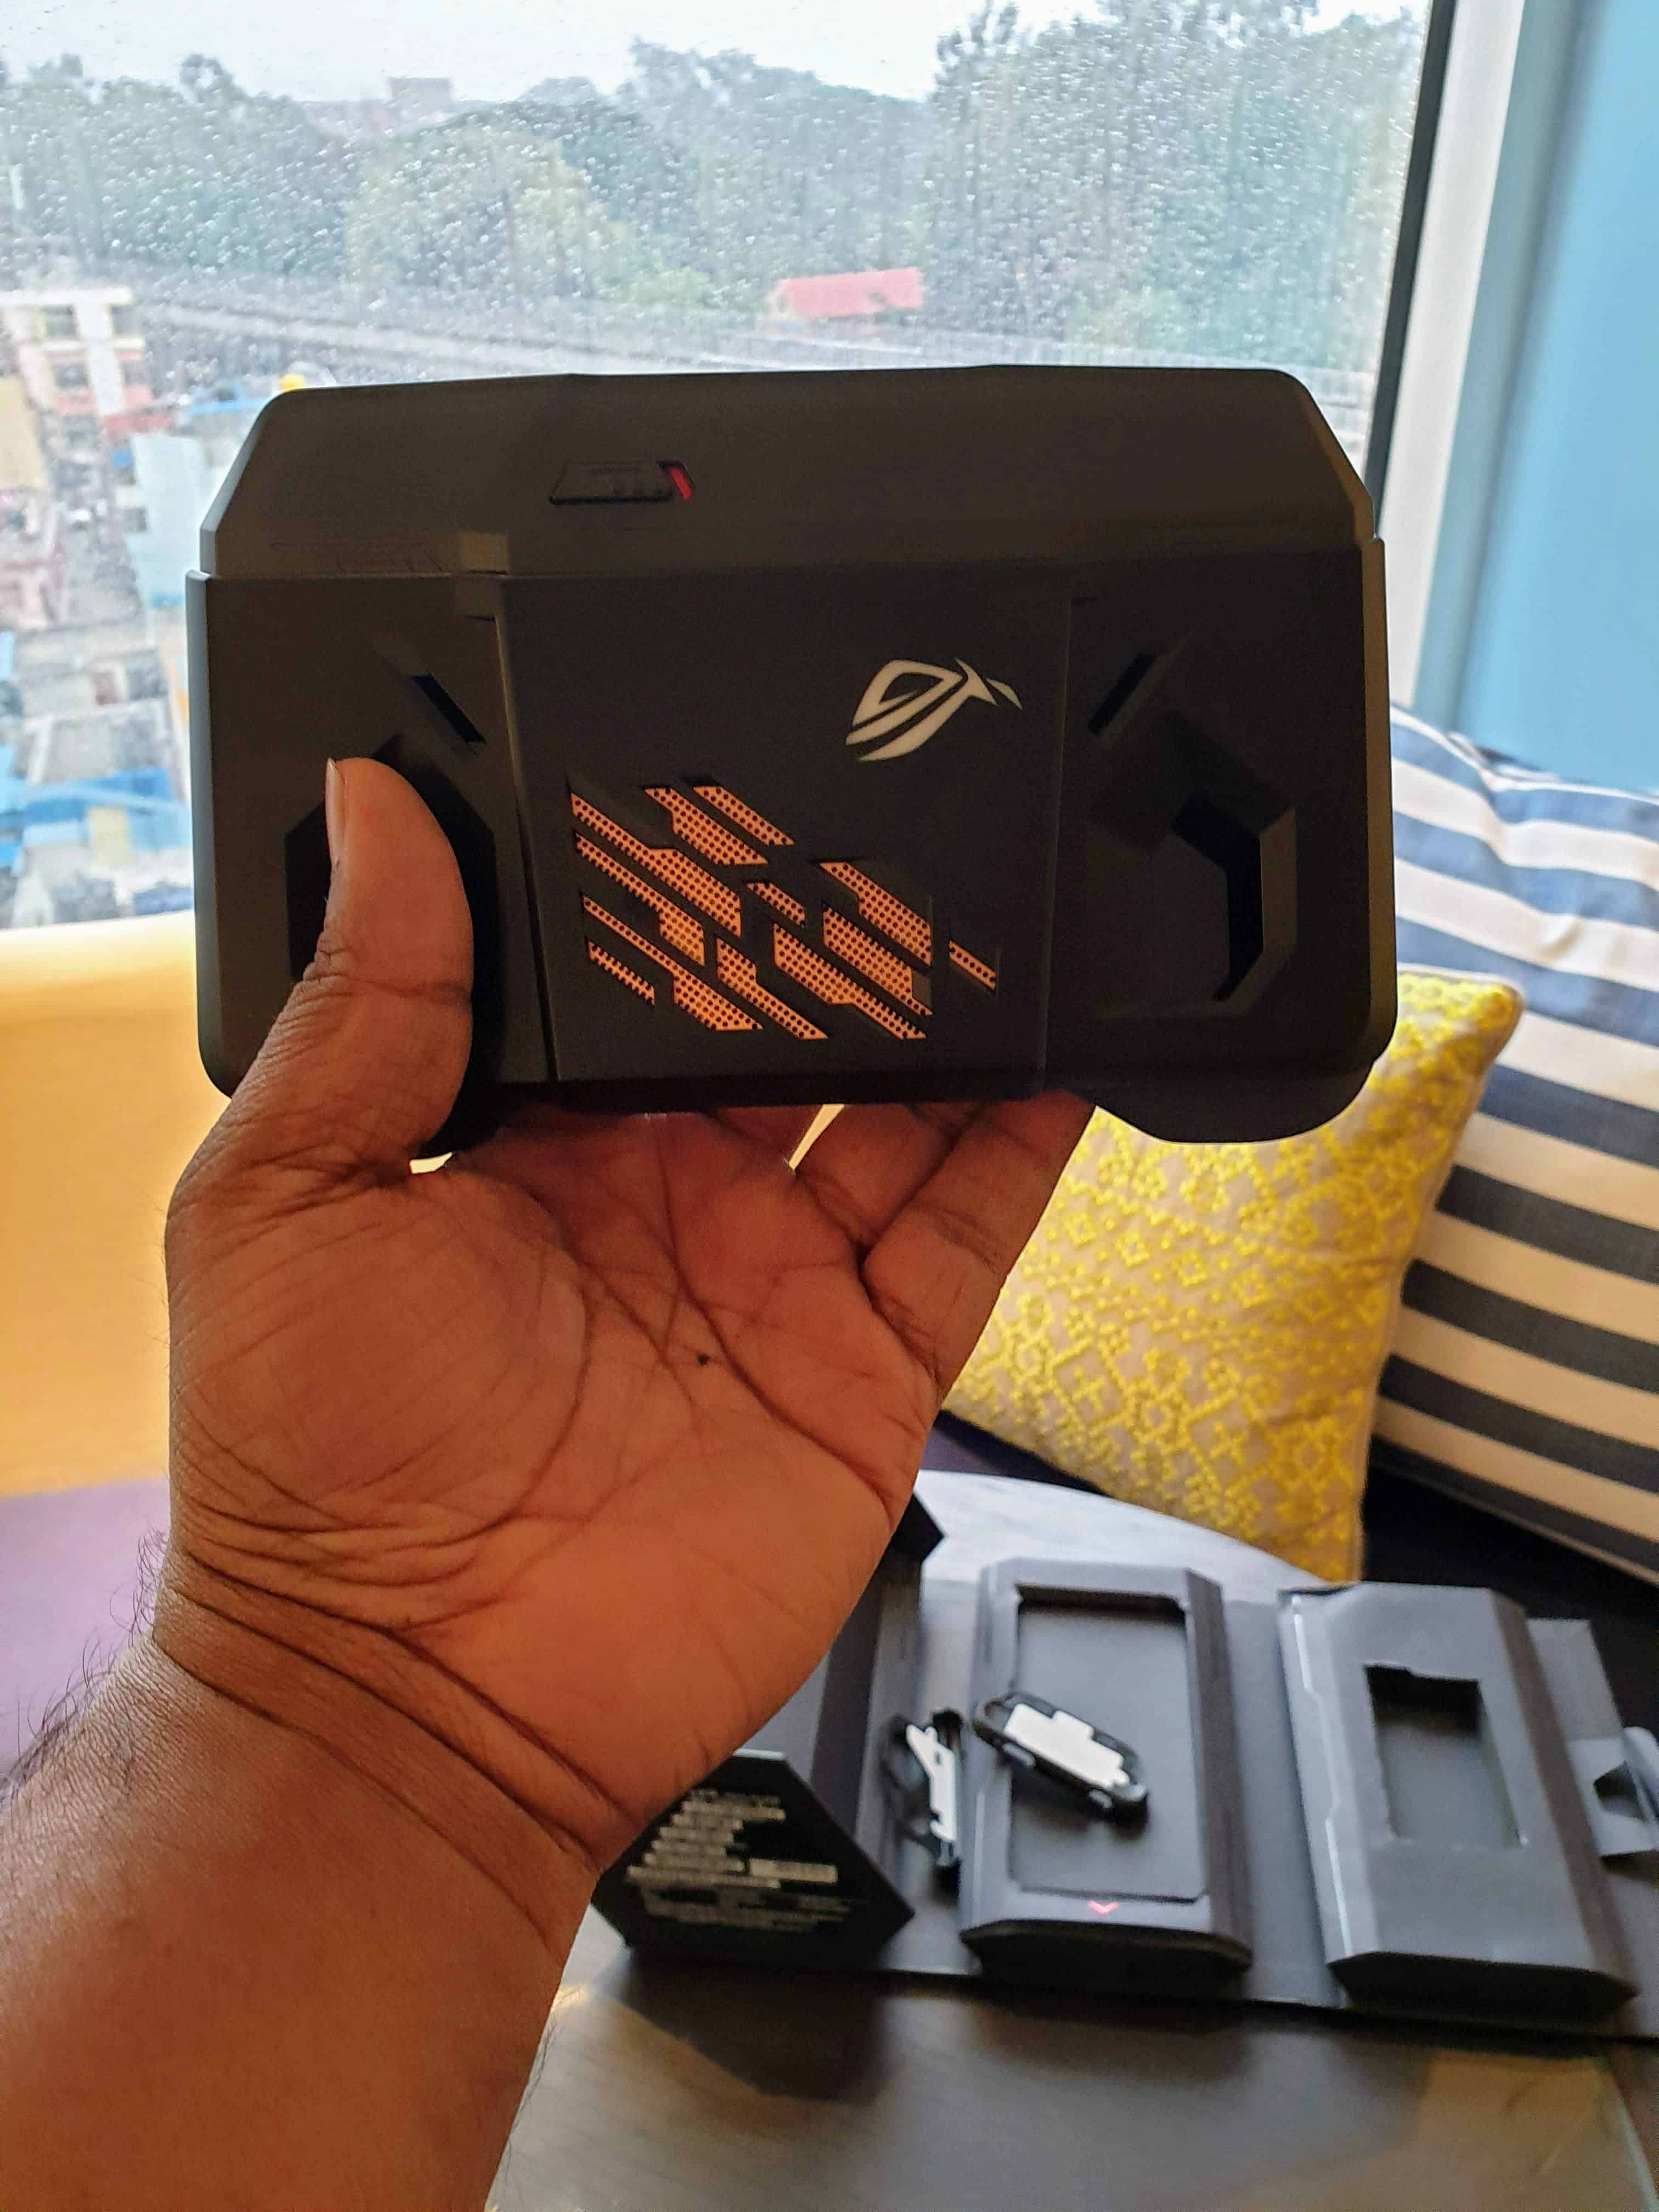 Asus ROG Phone Hands-on & First Impressions - The Real #GameChanger ? - 7